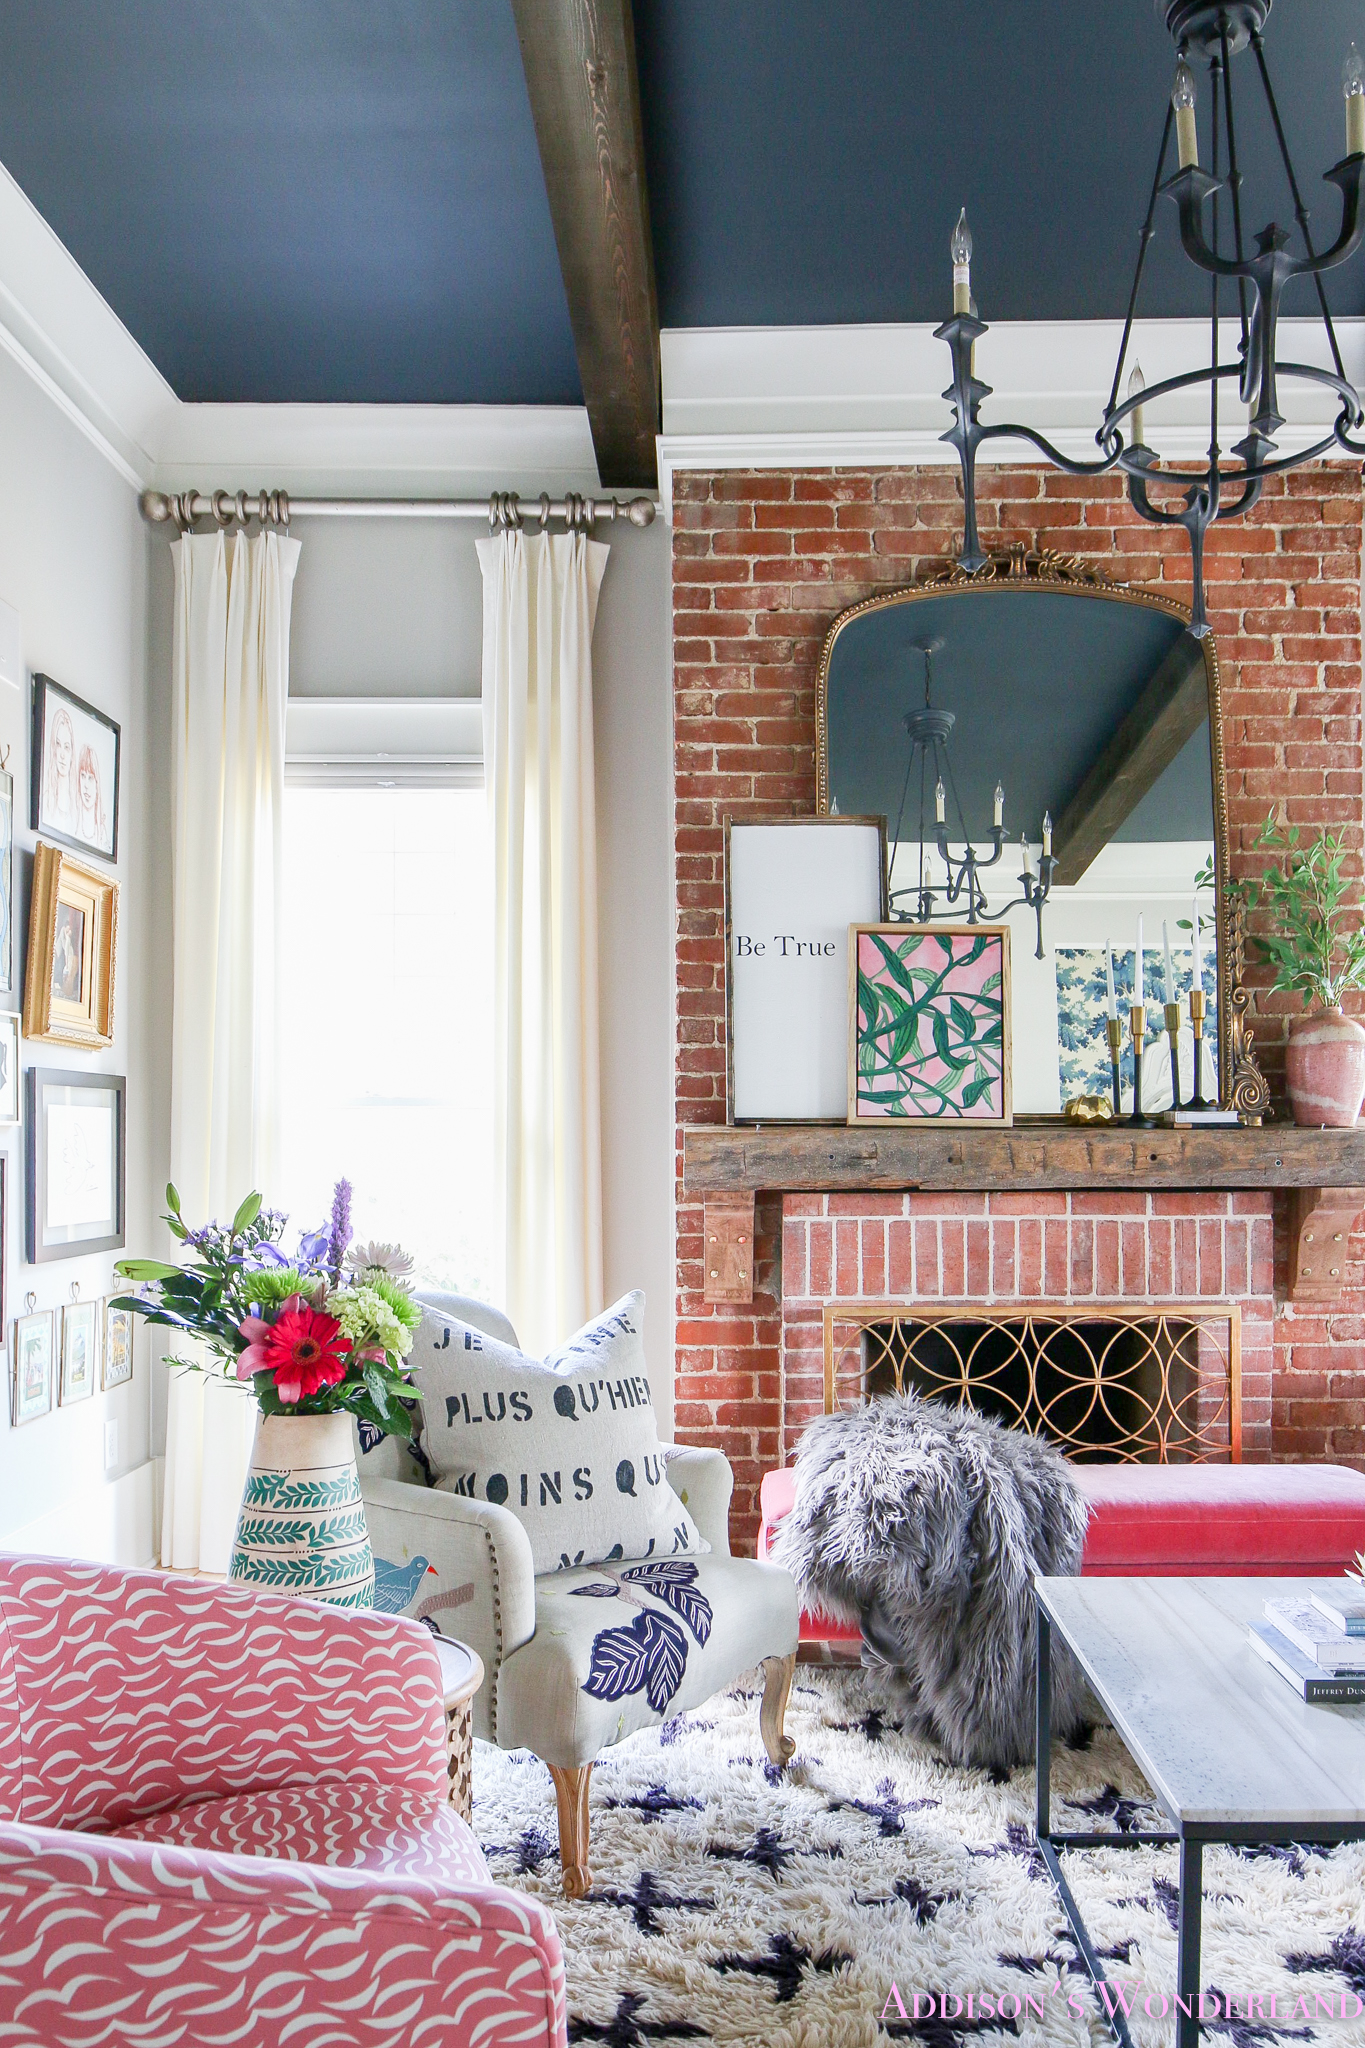 A Colorful Living Room Revamp with Walmart's Flower Home Line…